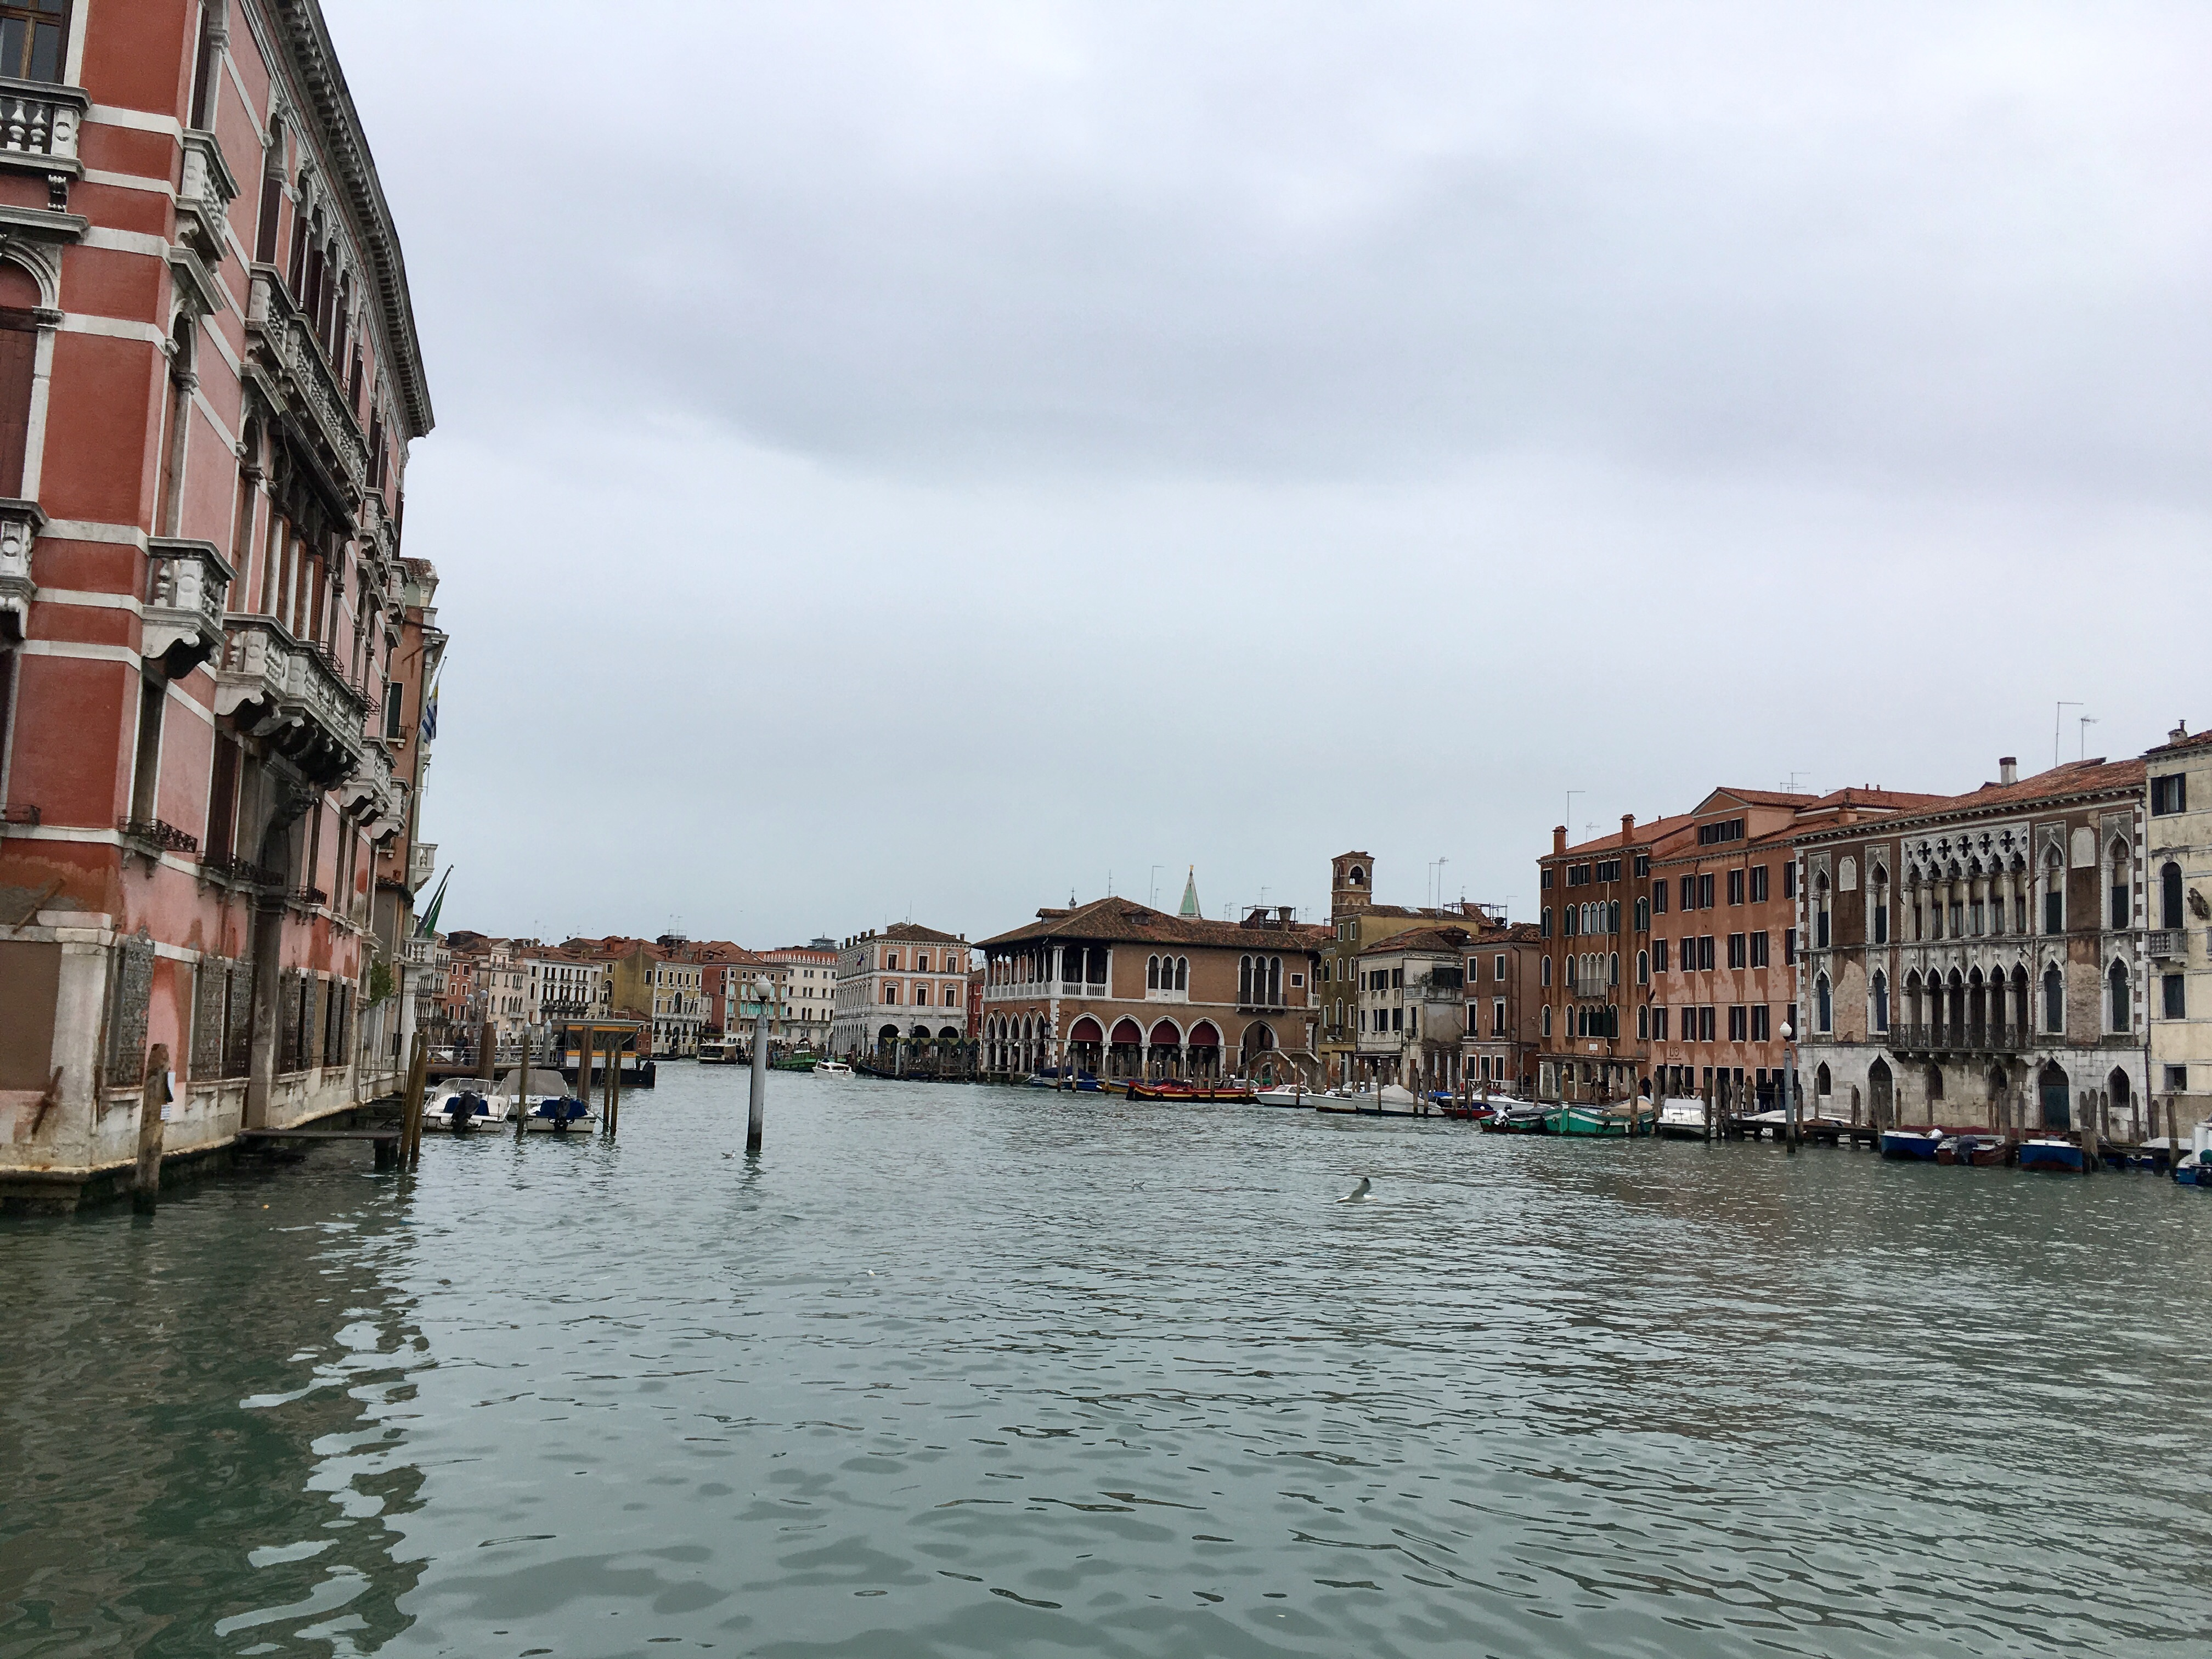 The Grand Canal view